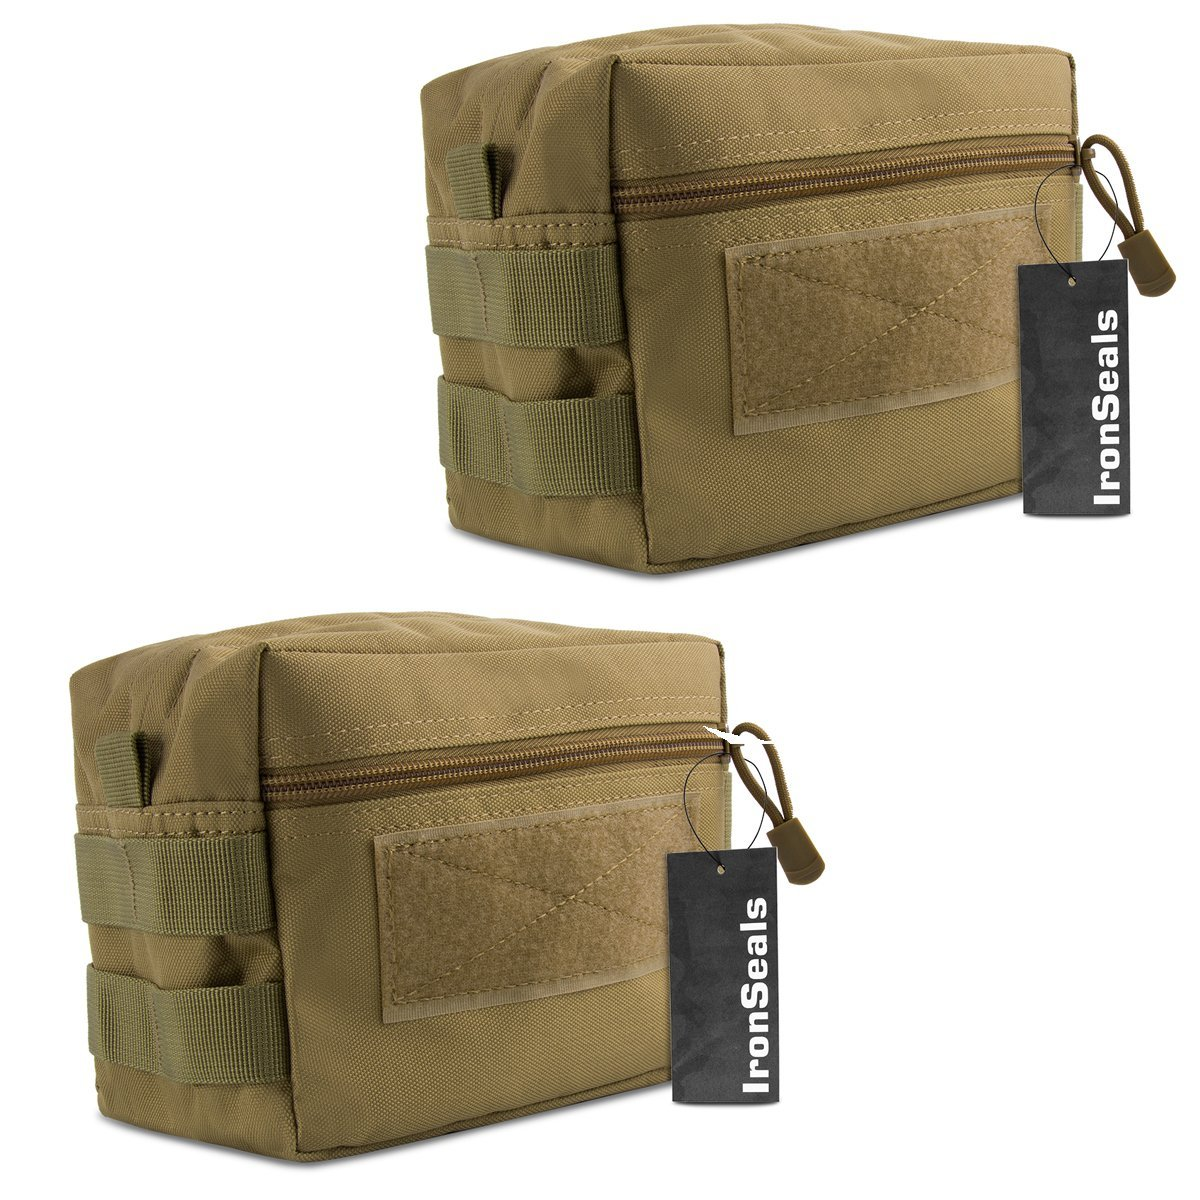 IronSeals MOLLE Pouch, 2 Pack Multi-Purpose Tactical Compact Water-Resistant Utility Gadget Gear EDC Pouch